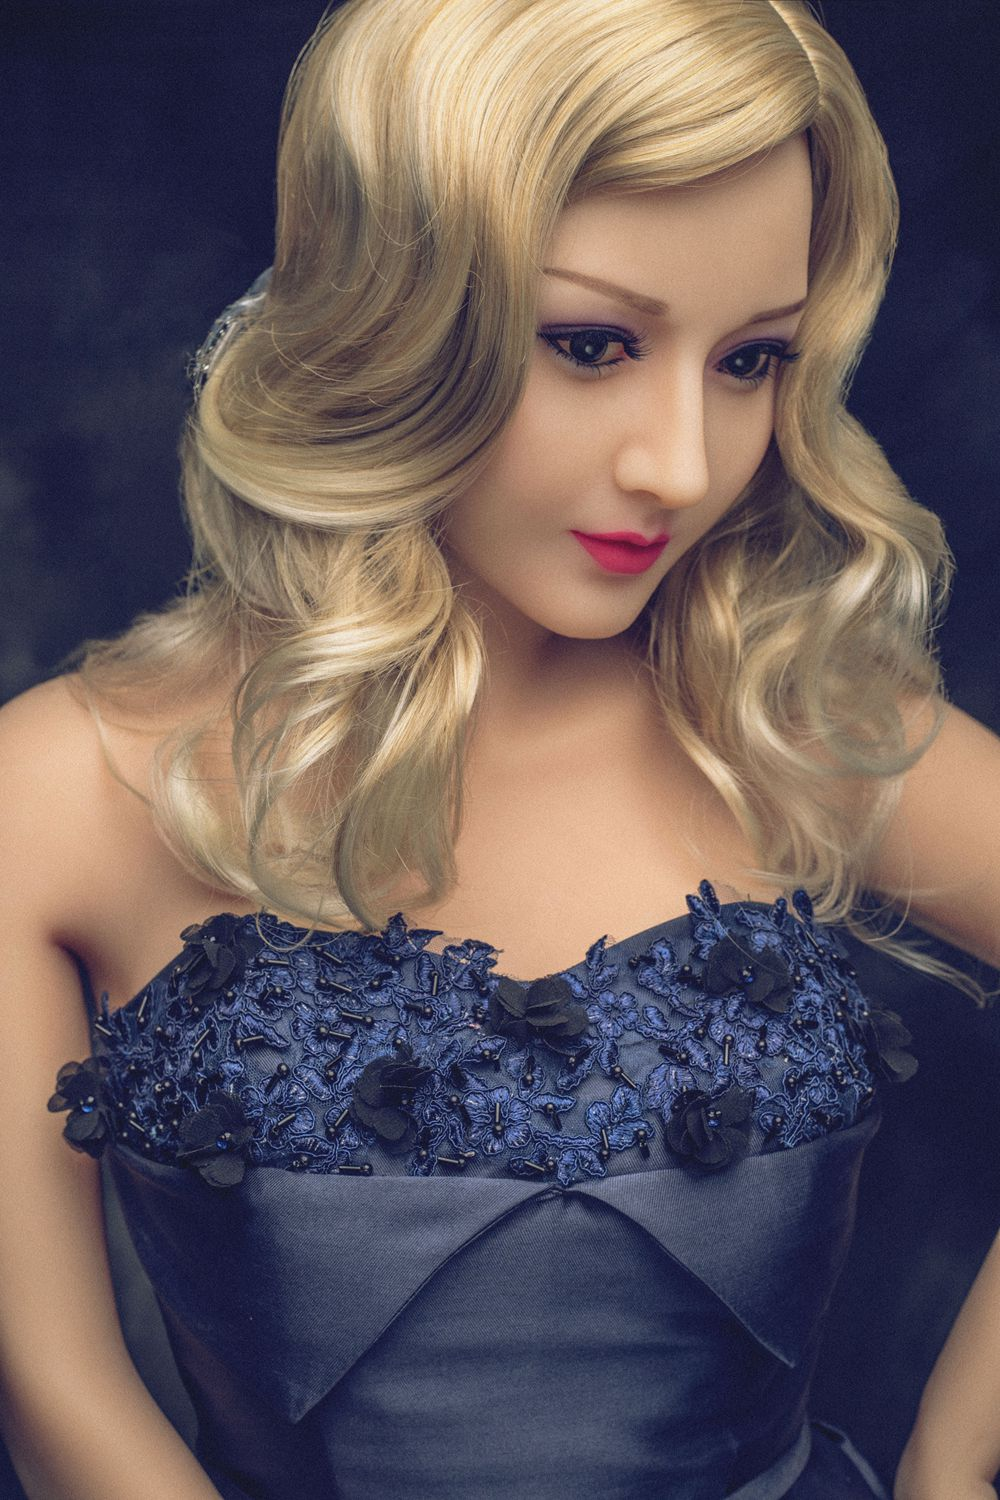 CLM DOLL Esther-158cm-face 21-Yellow skin realistic tpe sex doll